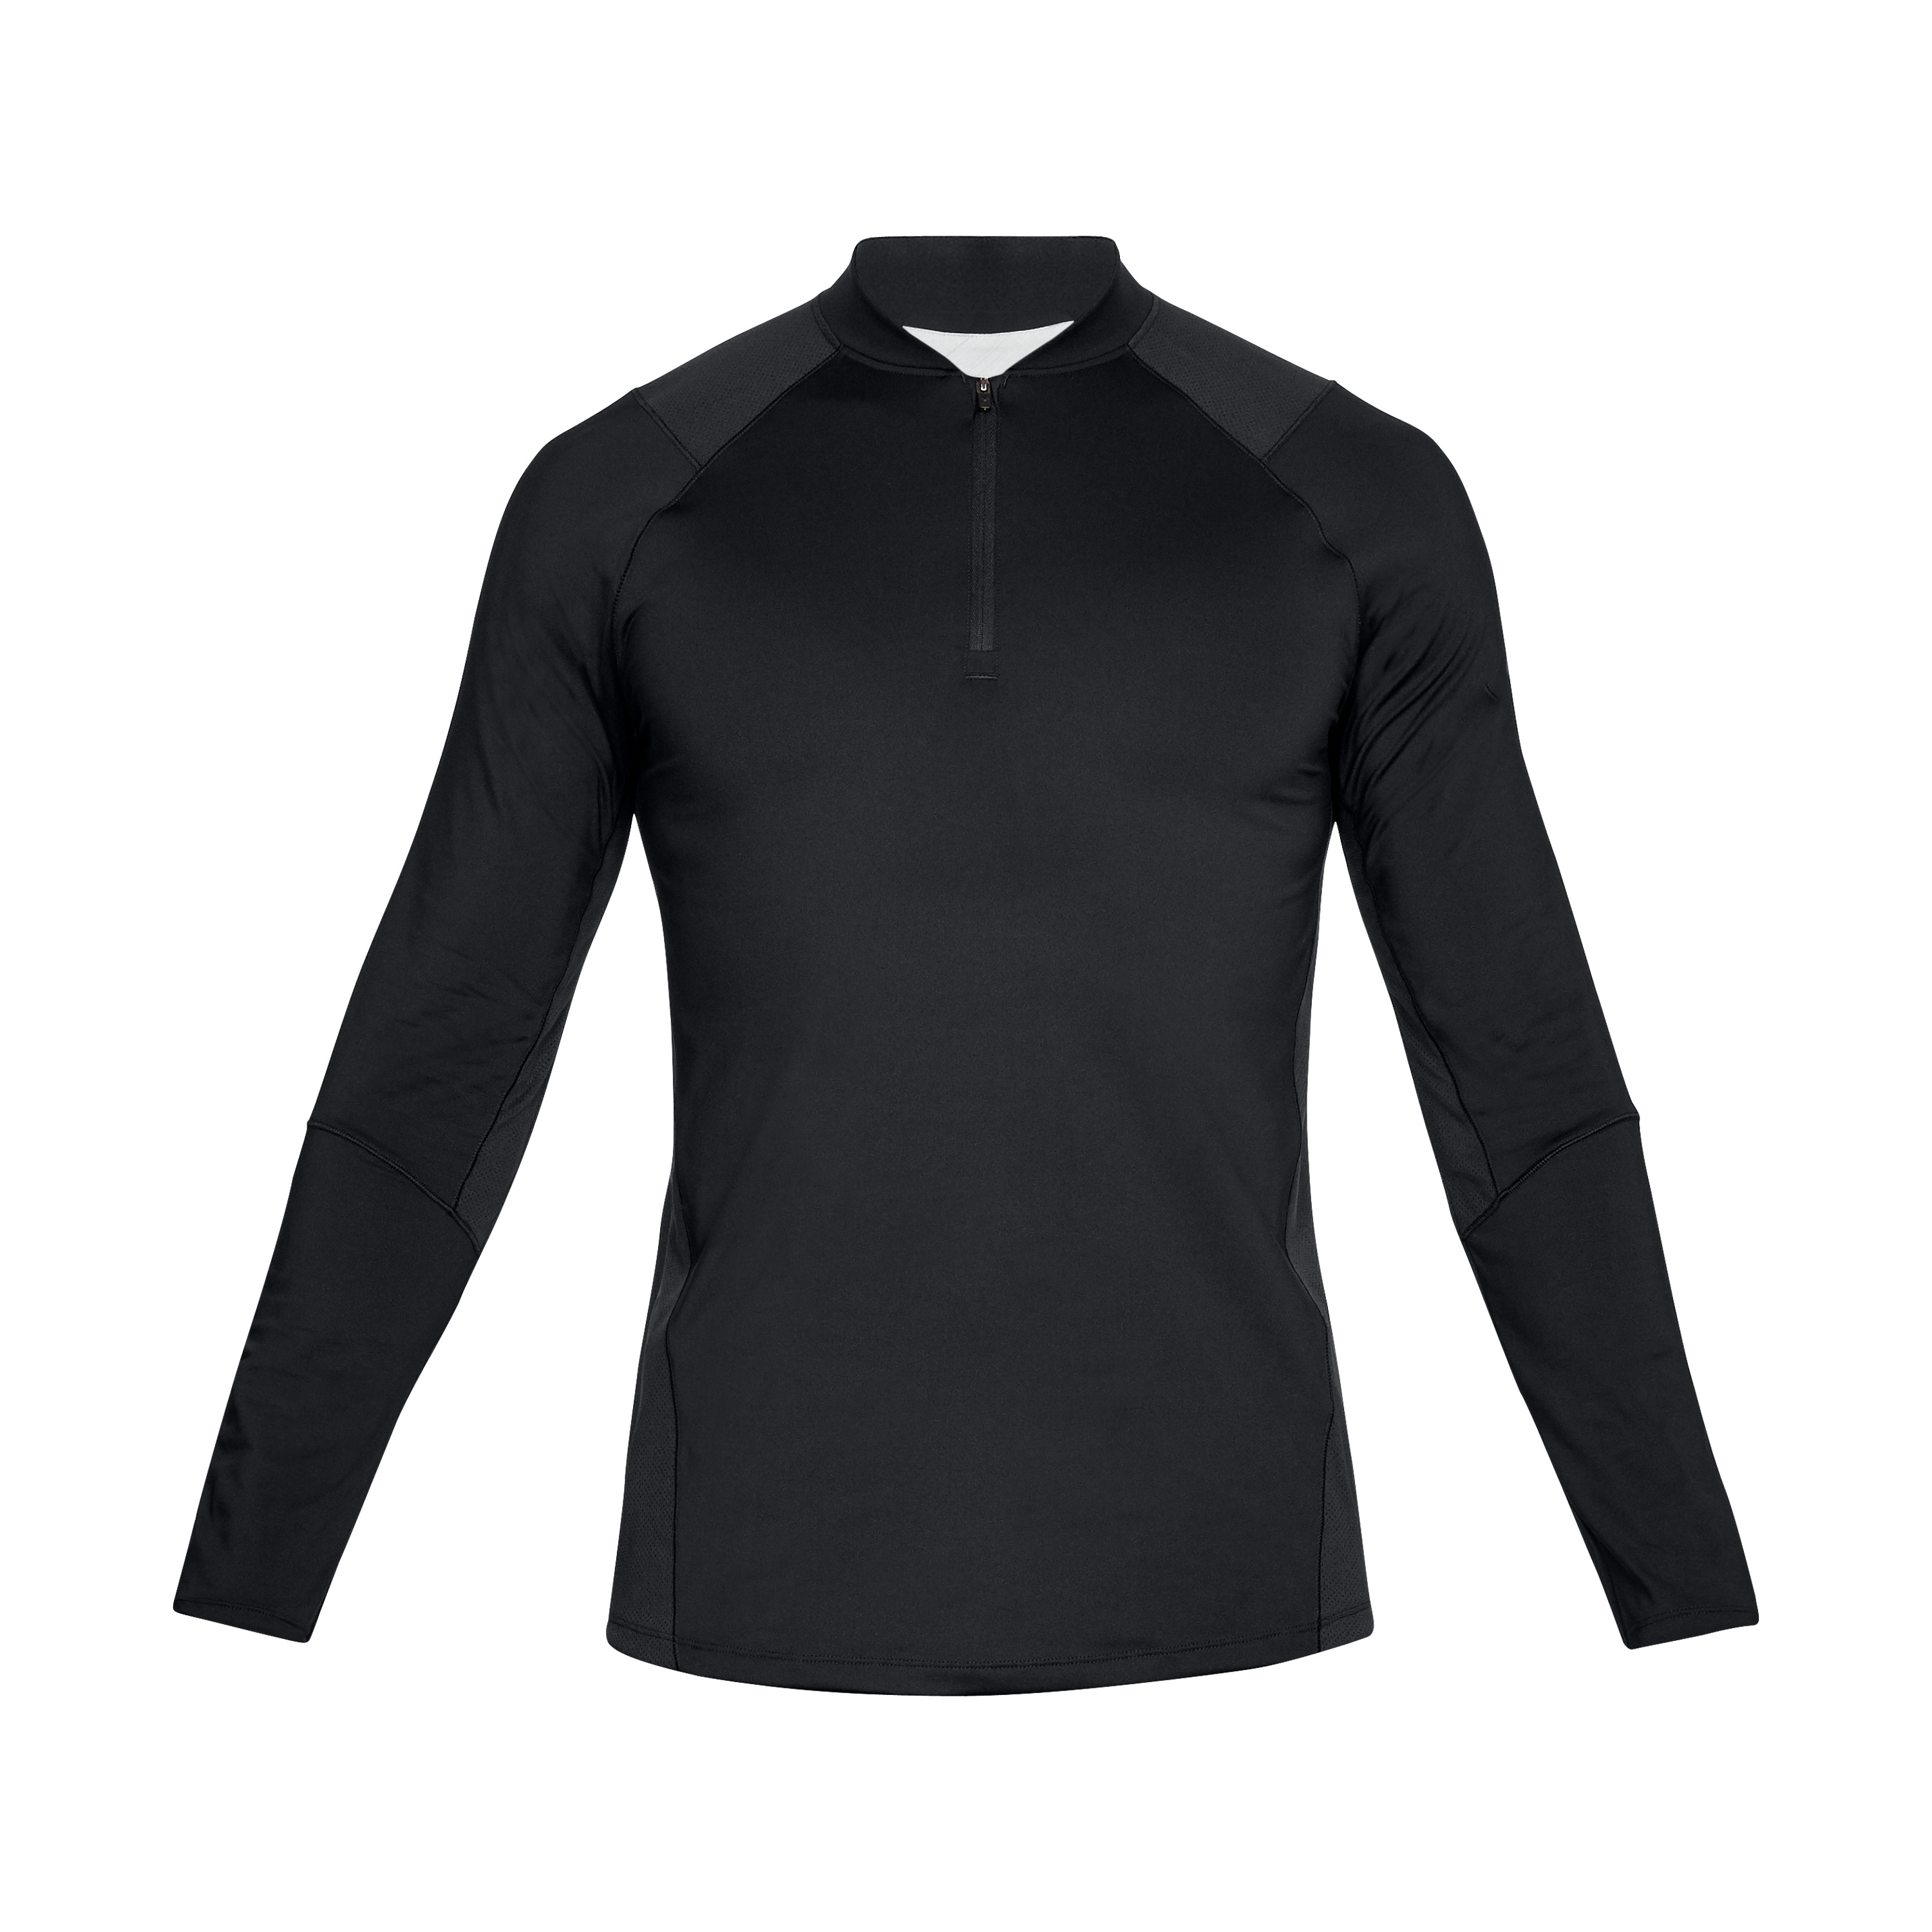 Under Armour Langarmshirt Raid 2.0 1/4 Zip schwarz